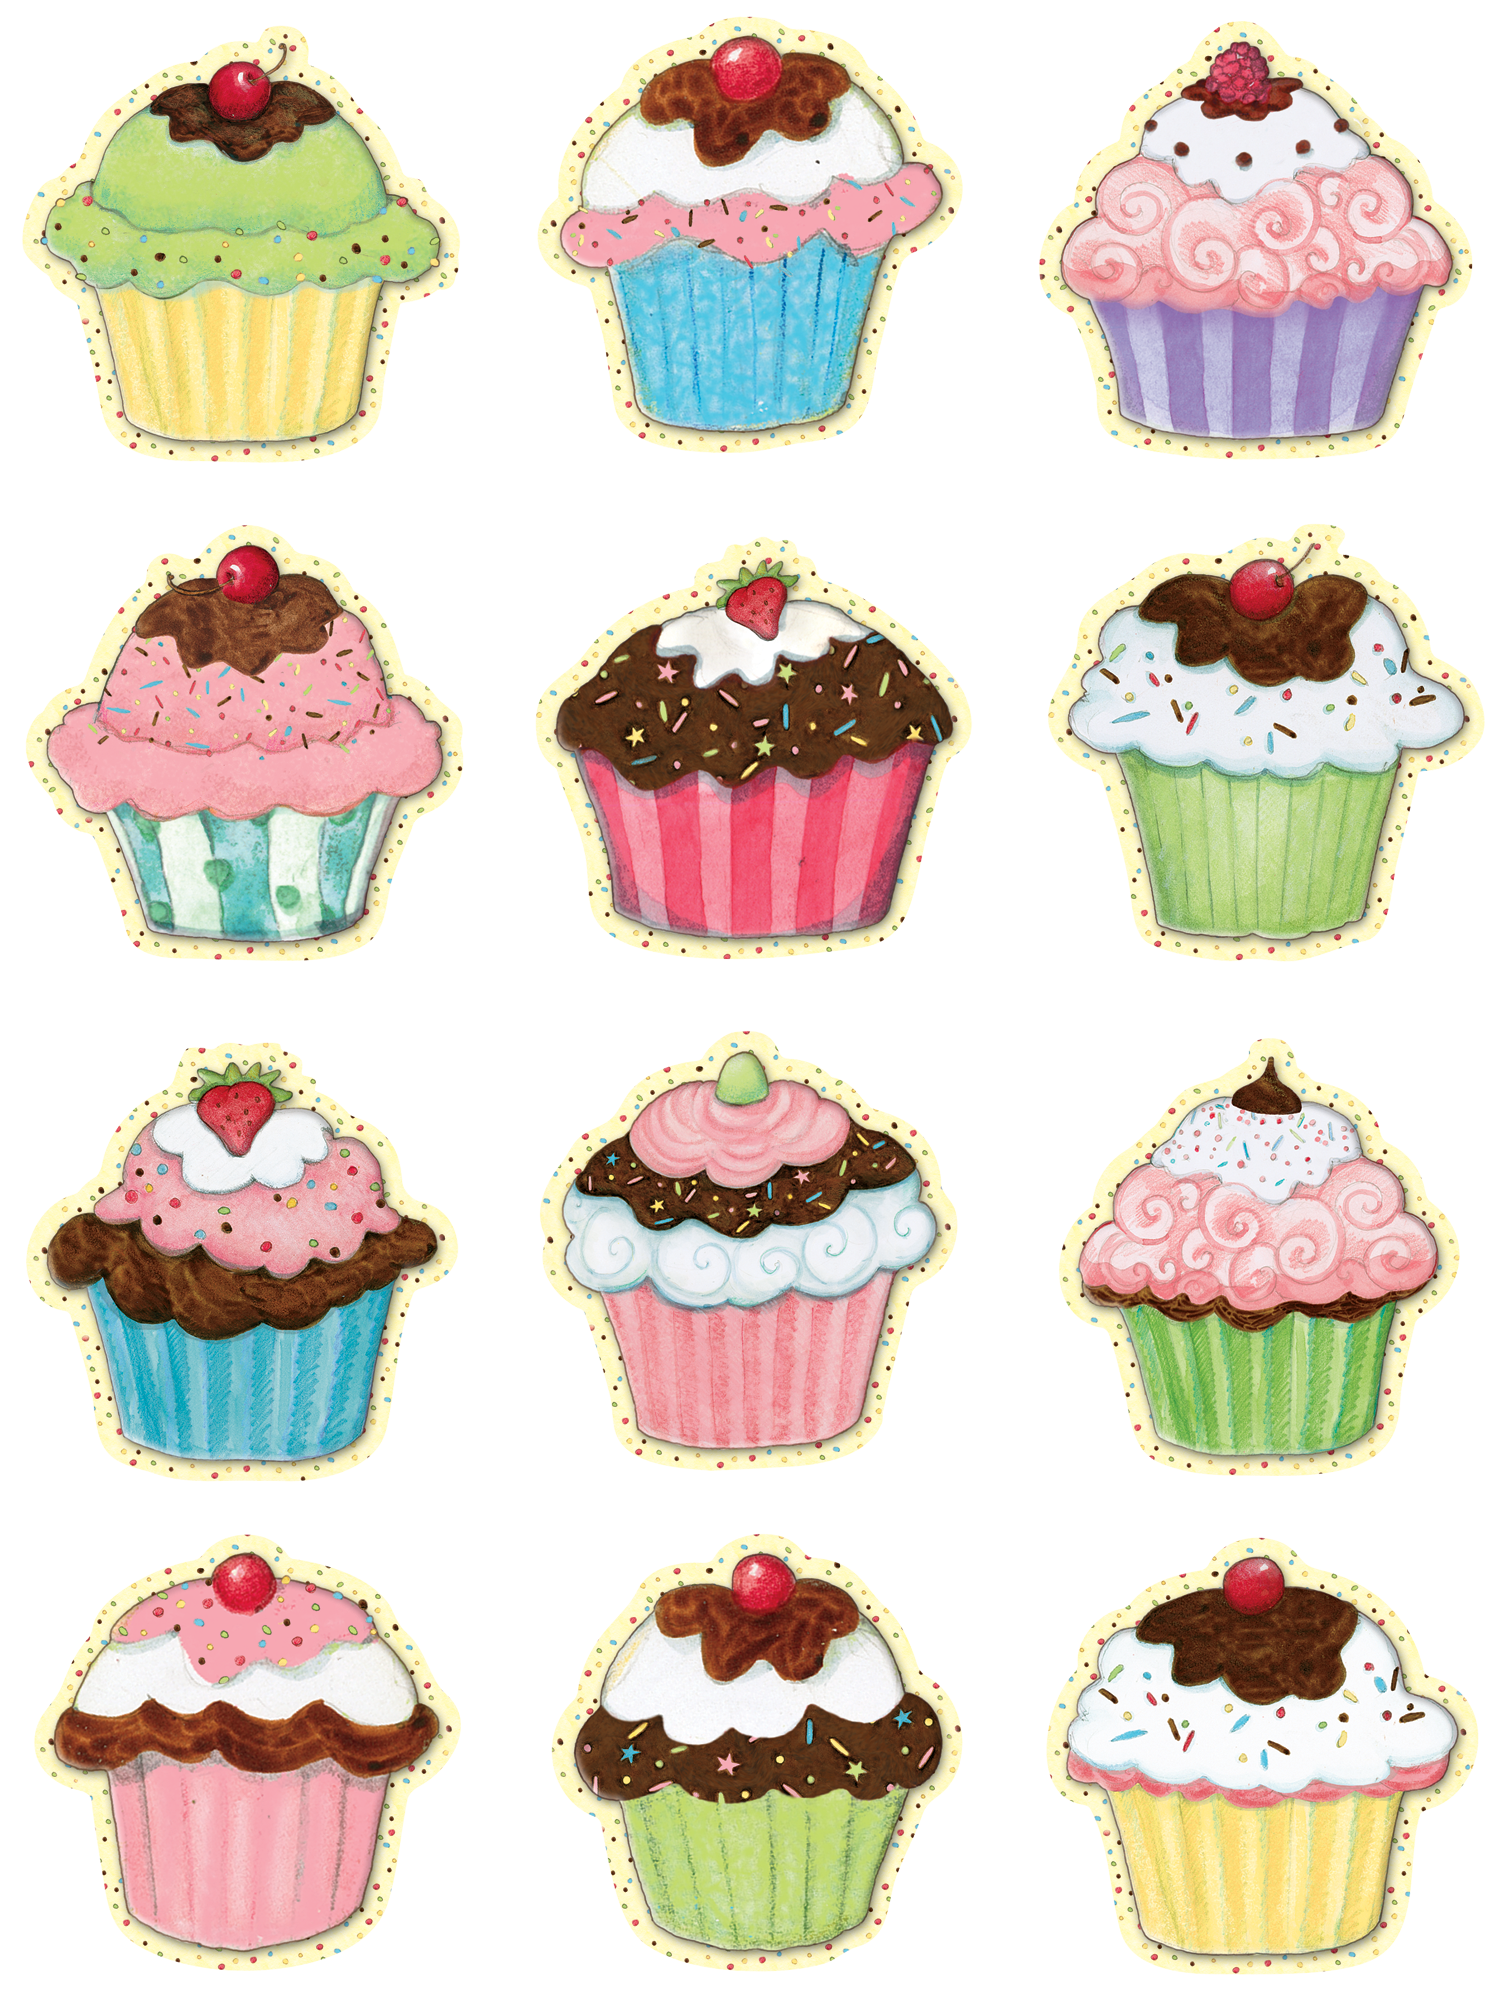 Cupcakes Mini Accents from Susan Winget.